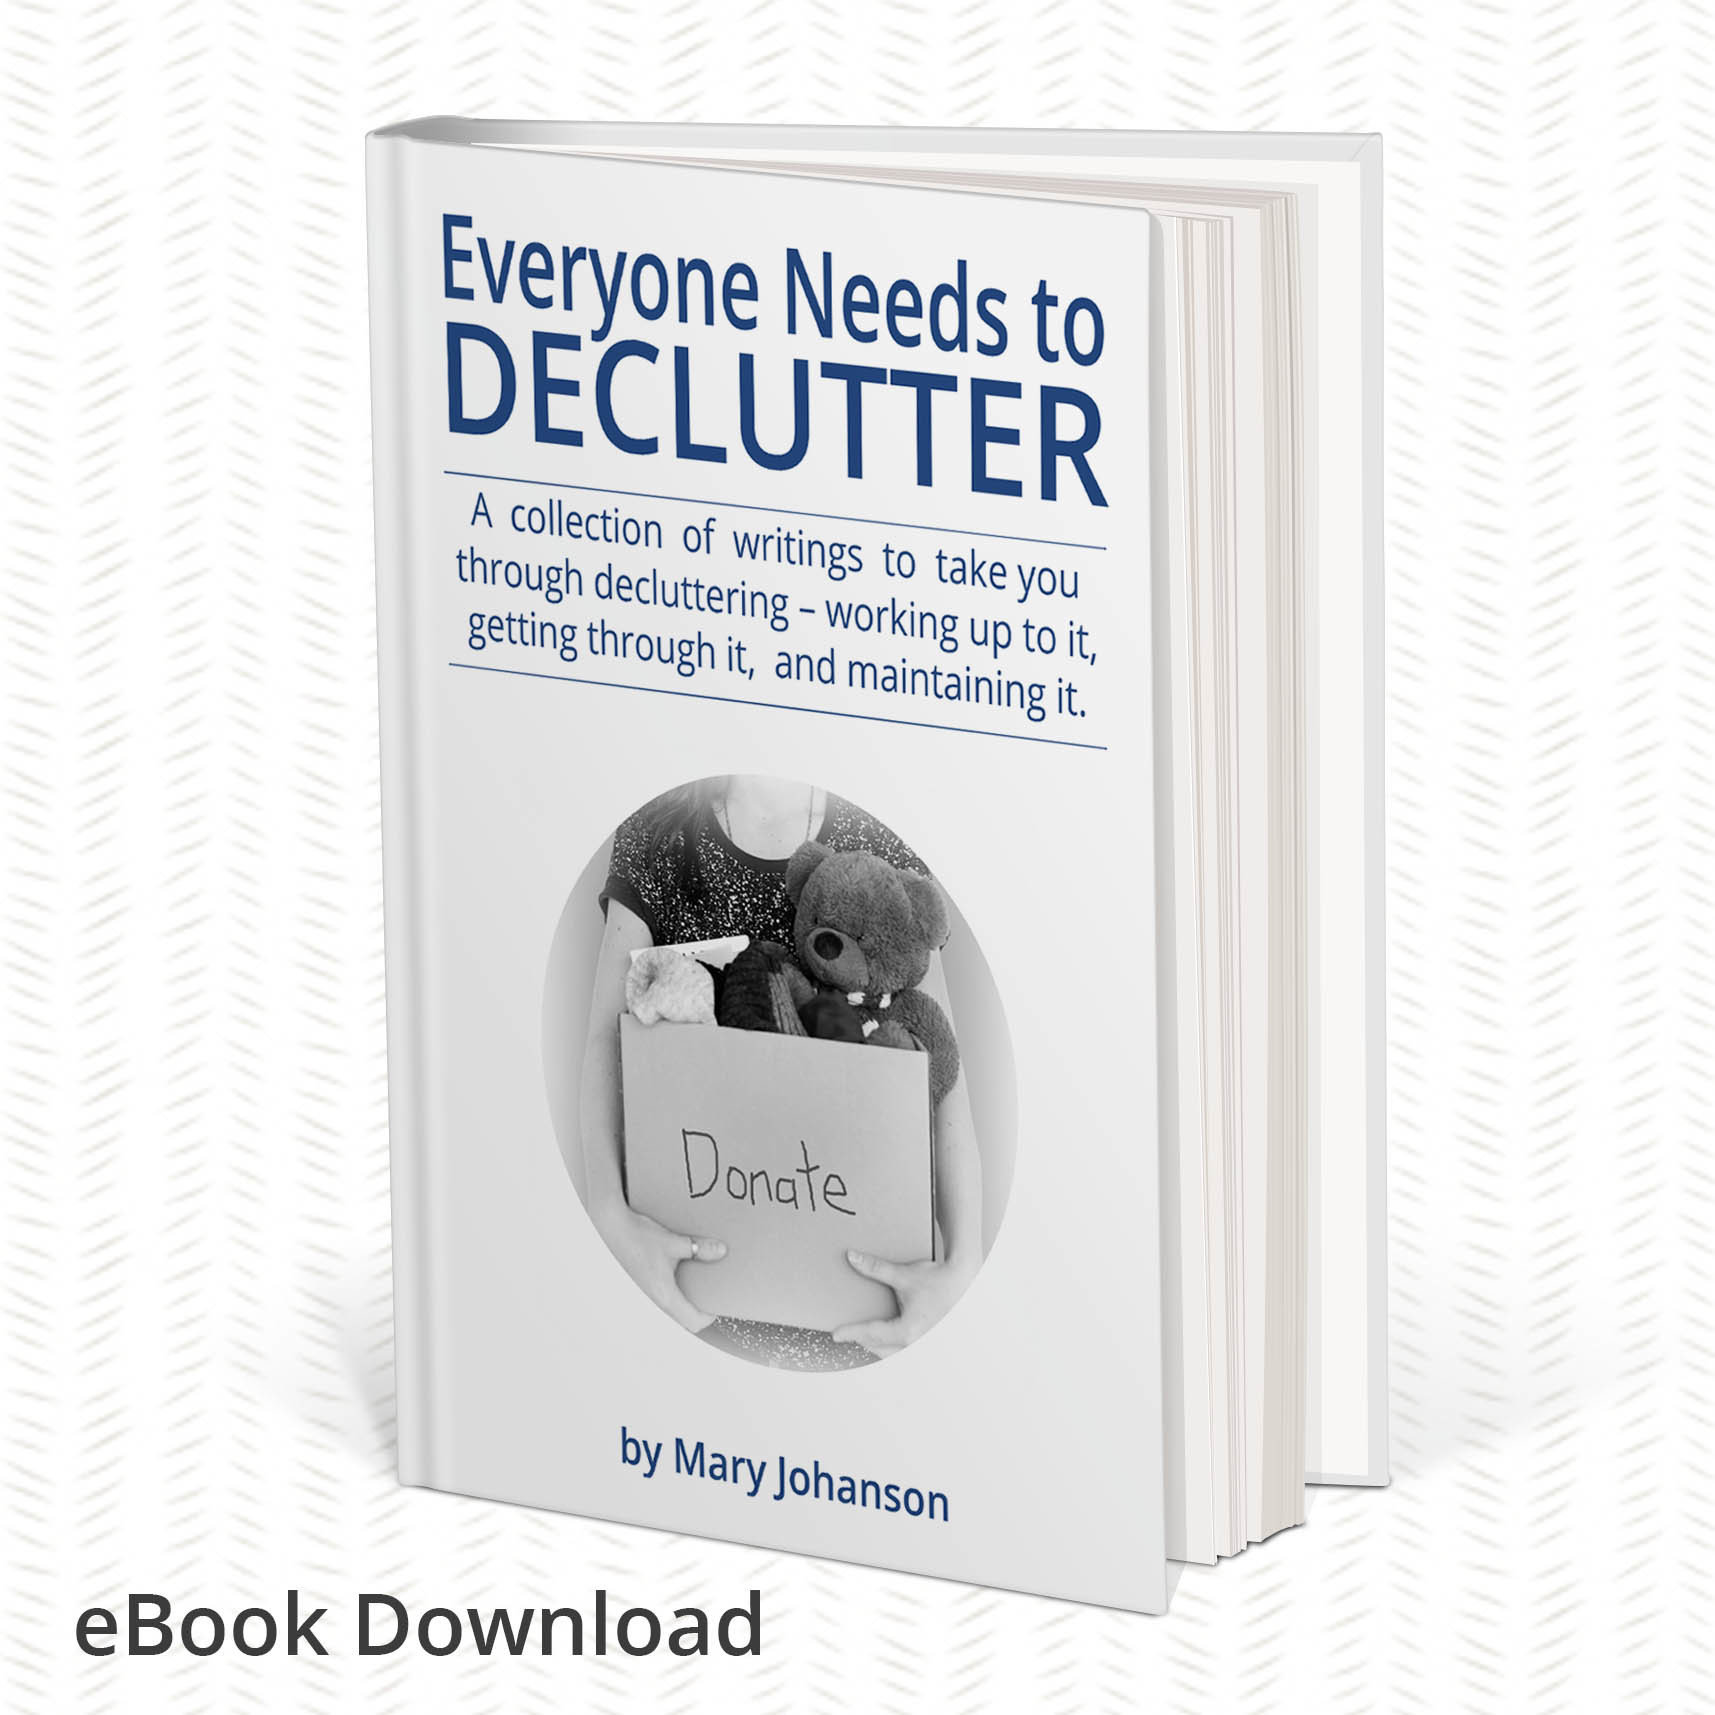 Everyone Needs to Declutter - my first eBook!